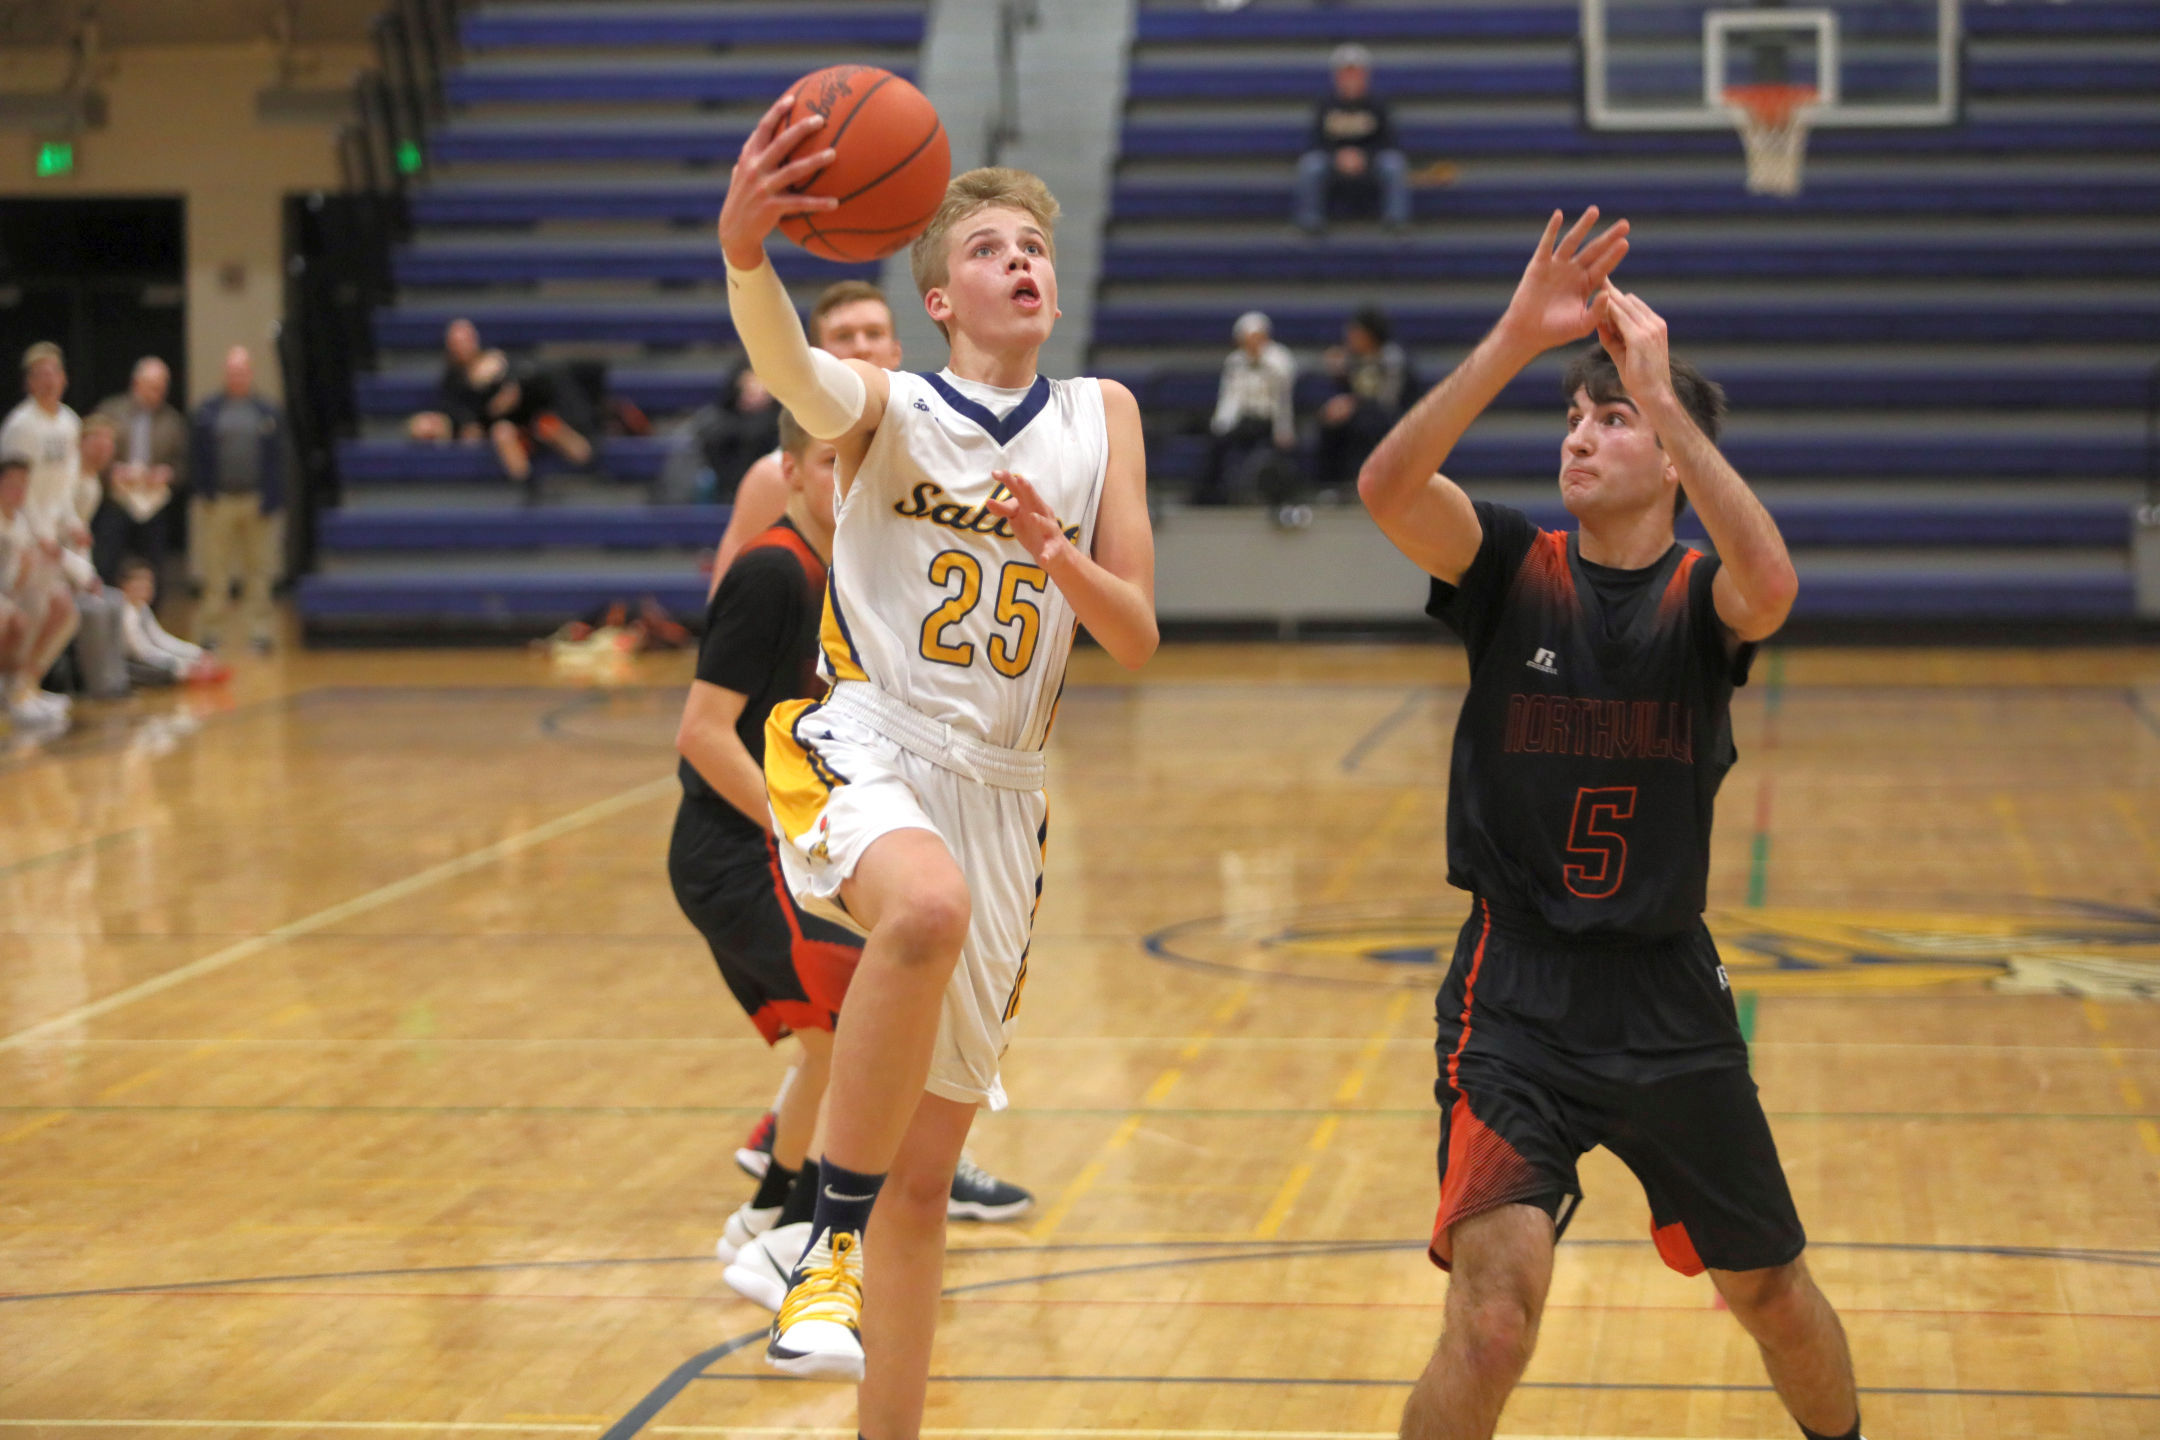 The Saline Post: Saline Improves to 3-0, Faces Pioneer Friday